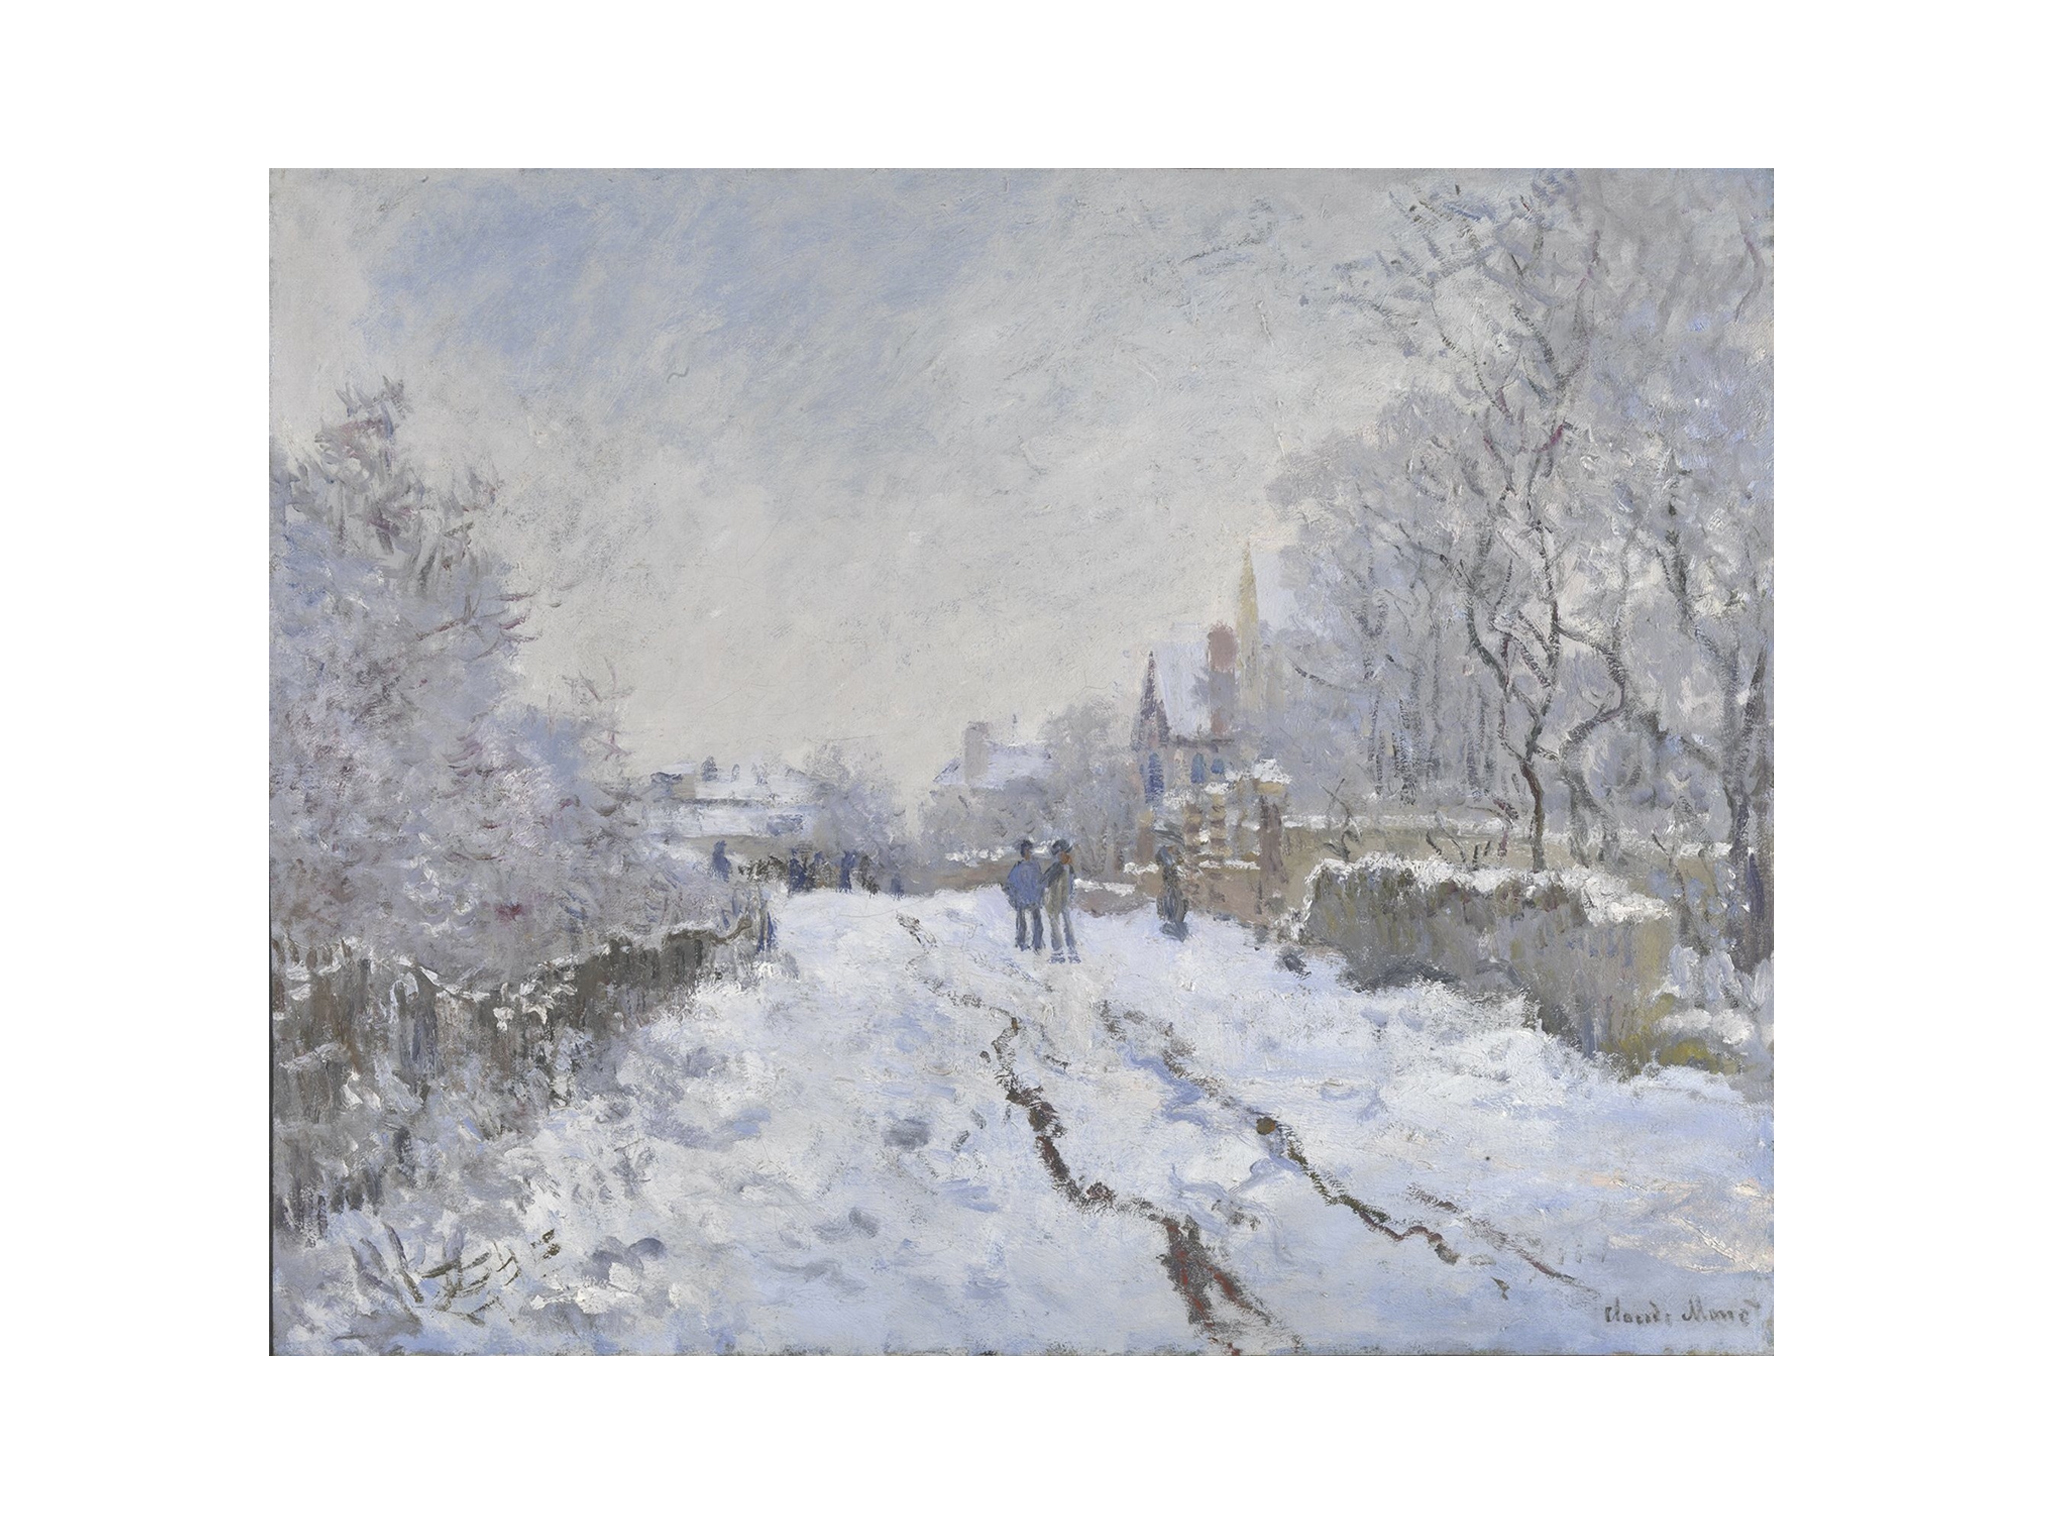 Claude Monet, 'Snow Scene at Argenteuil', 1875